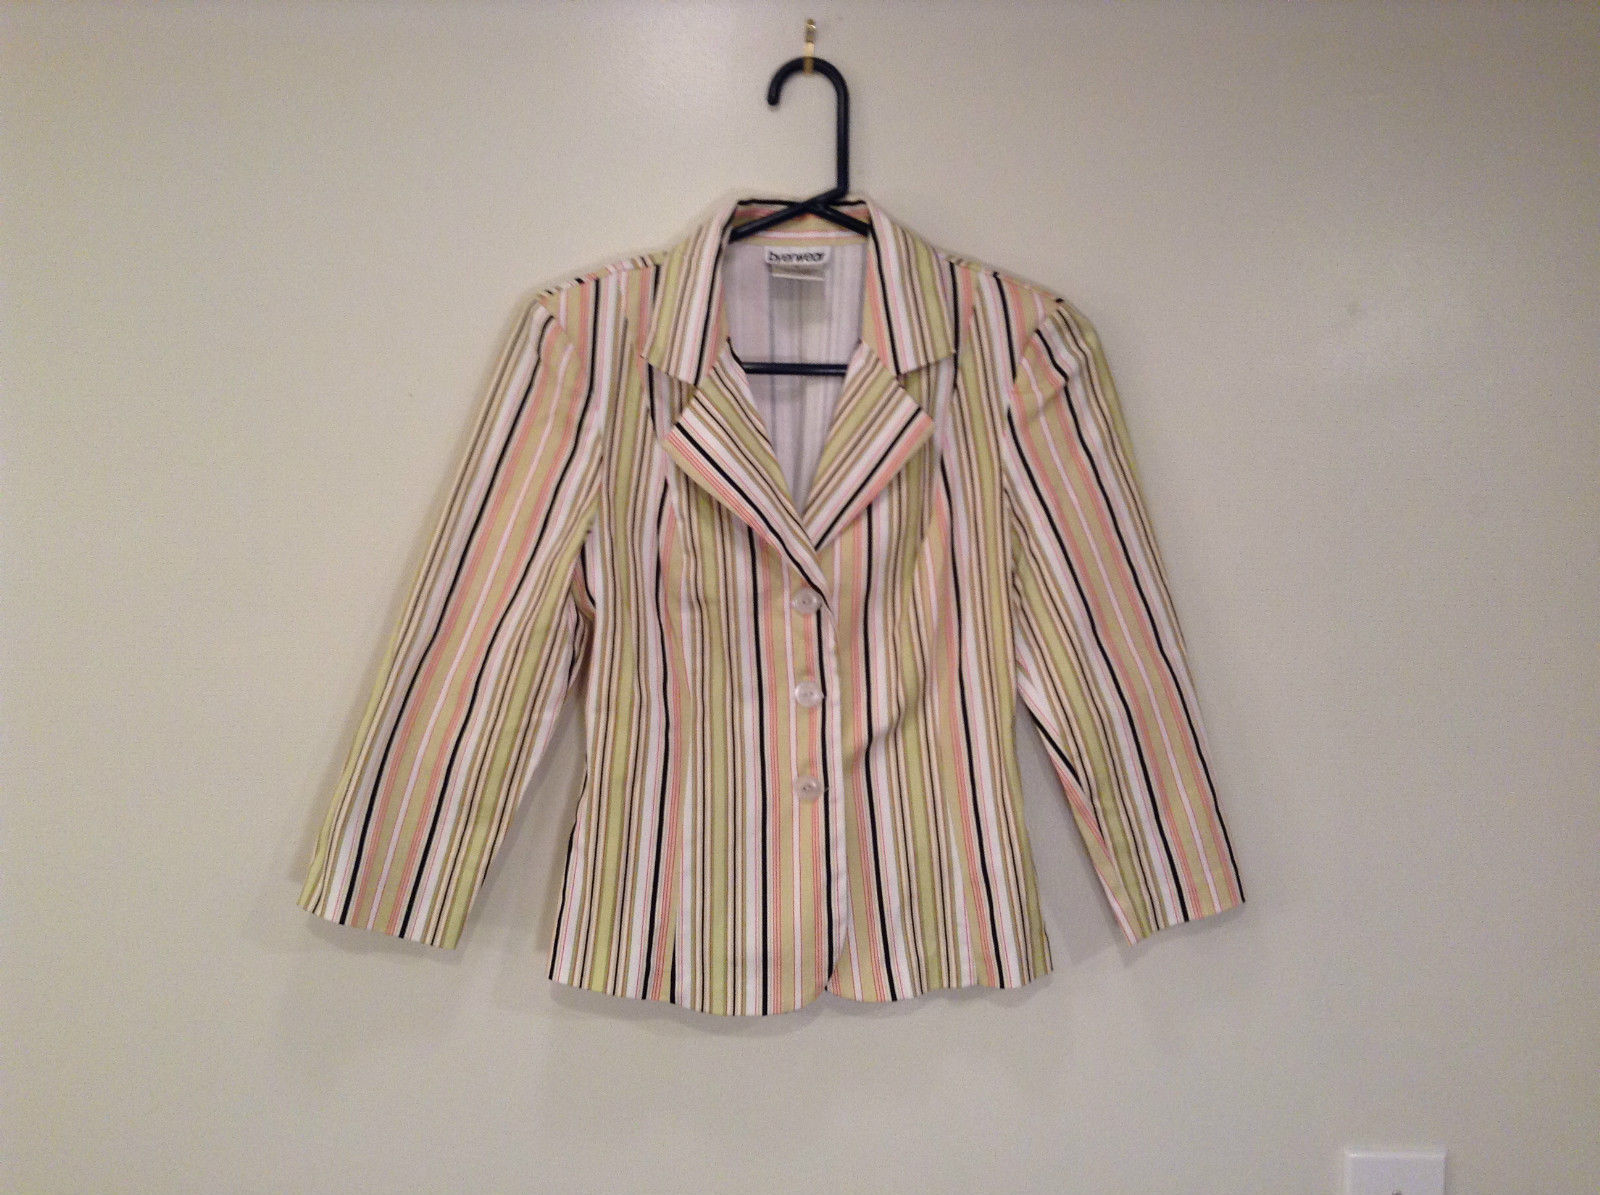 Byer wear Size M Green Light Green Black Red Beige Striped Light Blazer Jacket